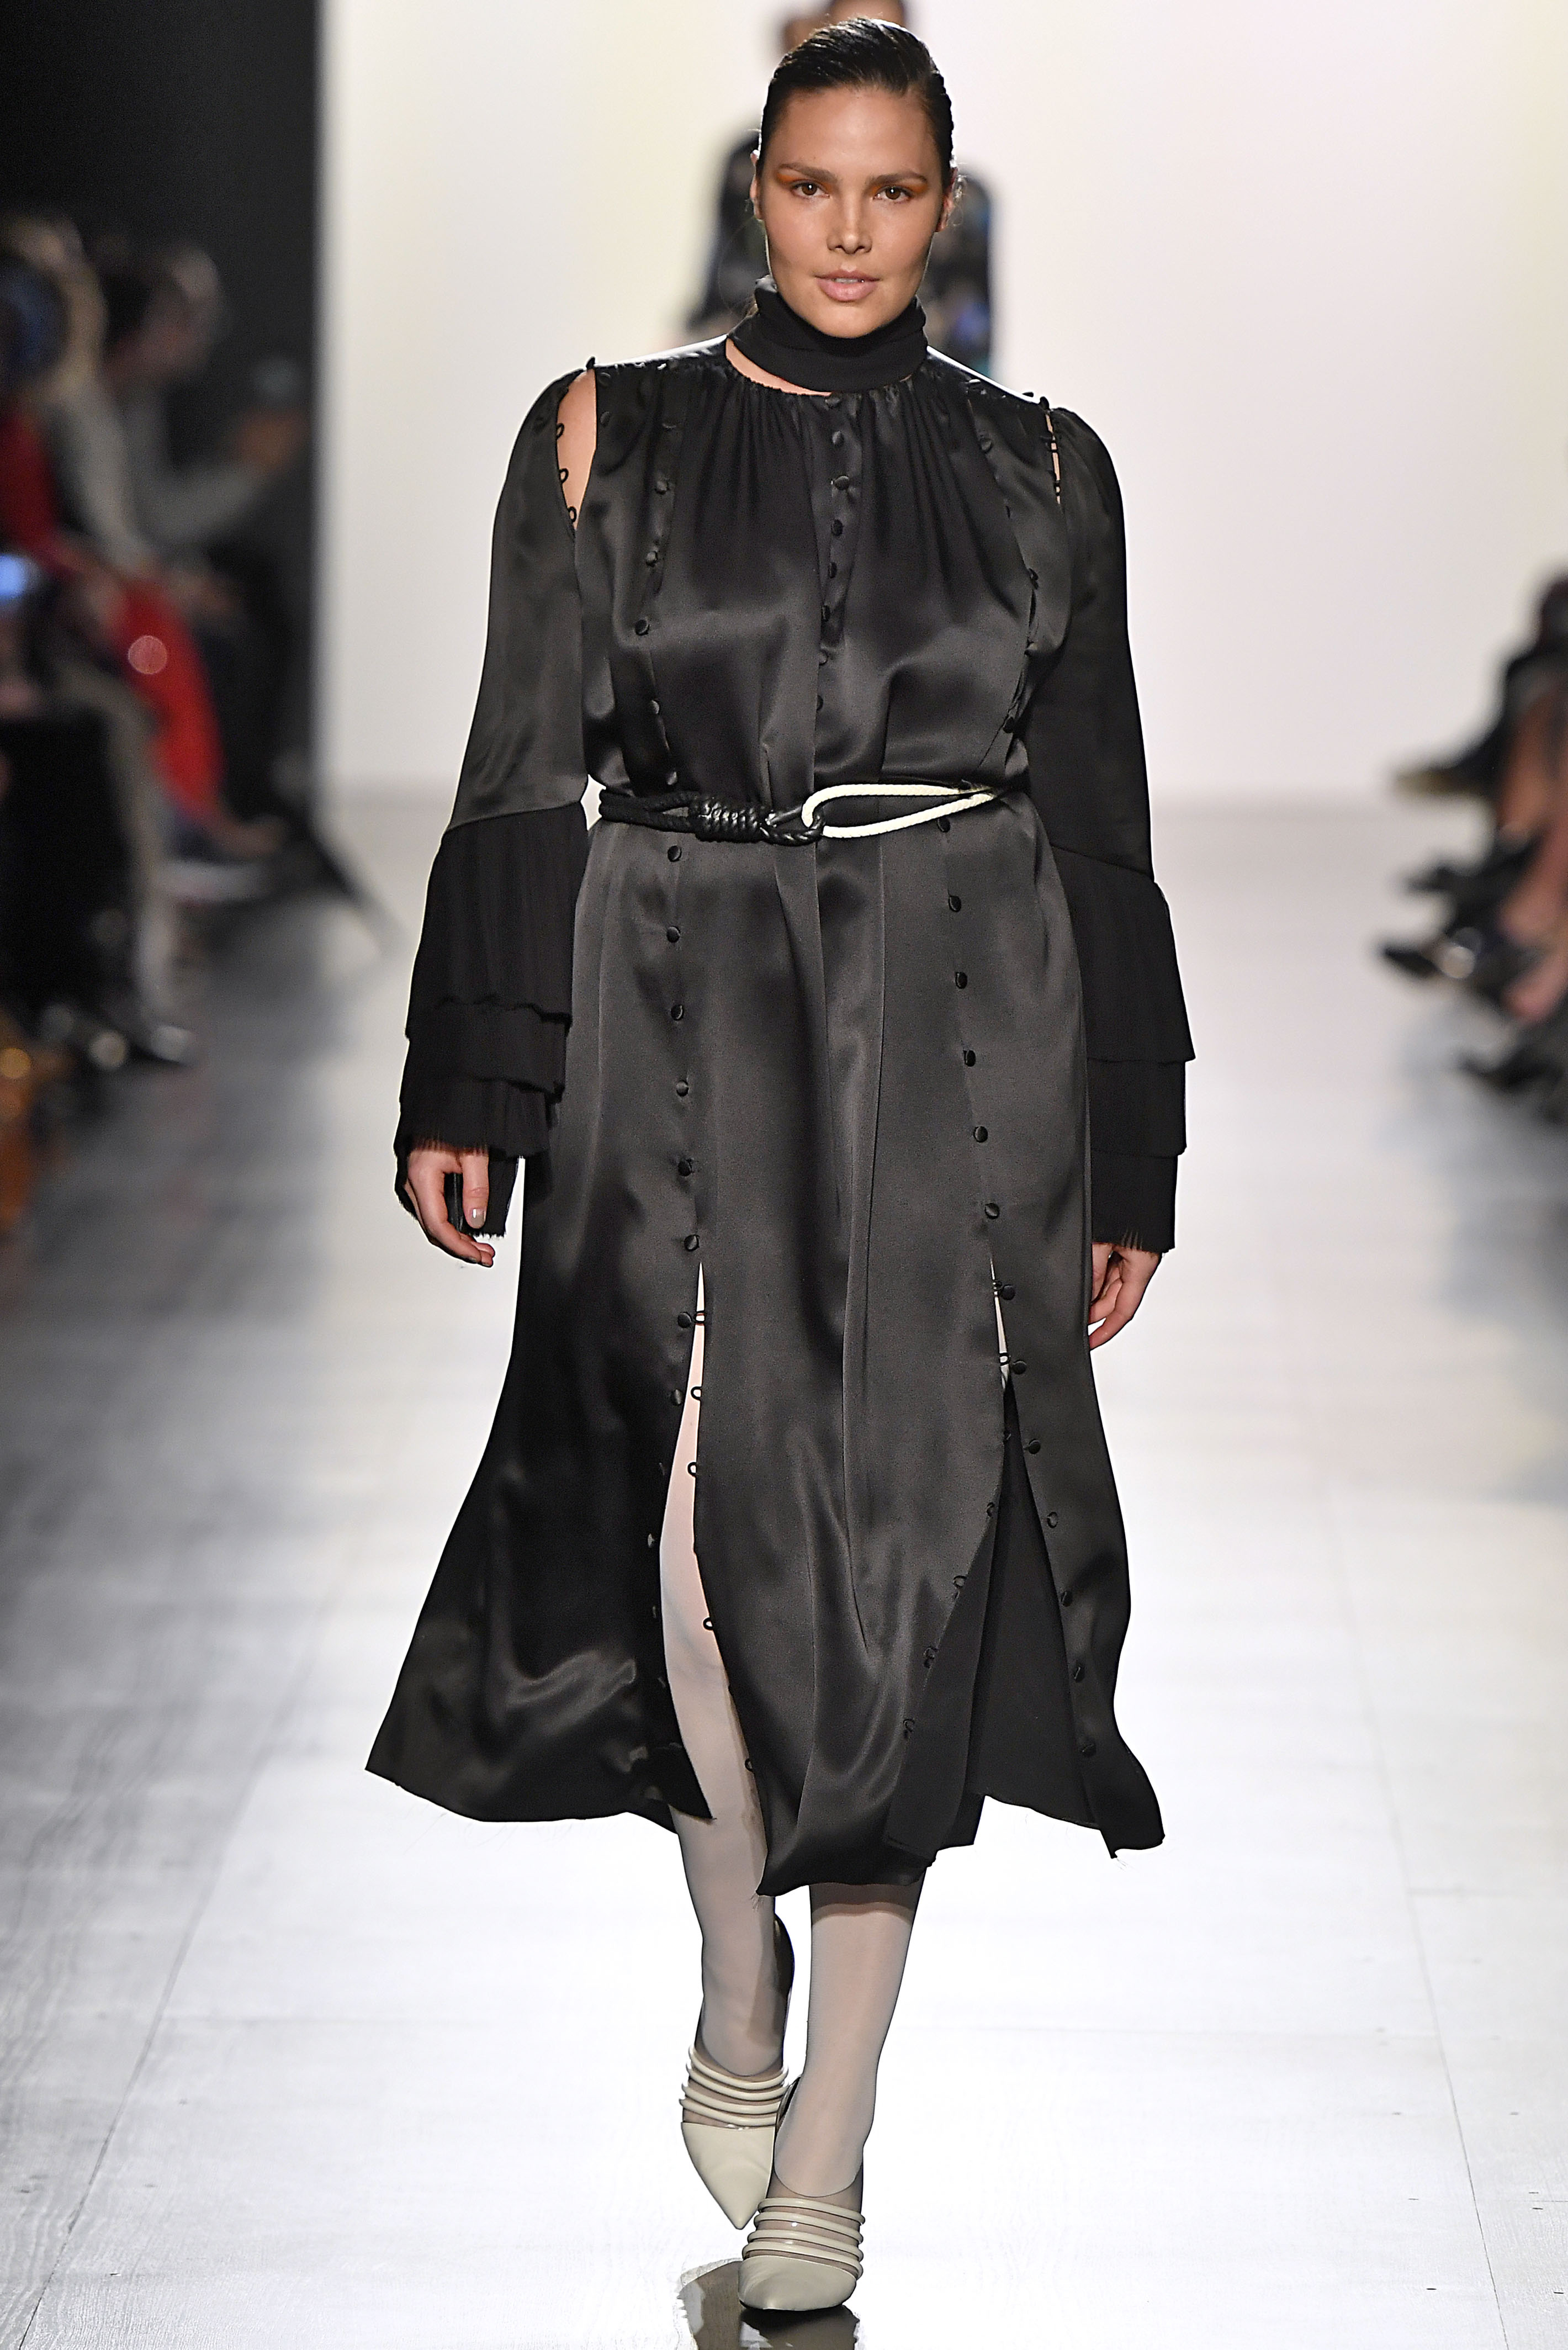 NEW YORK, NY - FEBRUARY 12: Candice Huffine walks the runway at the Prabal Gurung fashion show during New York Fashion Week Fall Winter 2017-2018 on February 12, 2017 in New York City. (Photo by Victor VIRGILE/Gamma-Rapho via Getty Images)